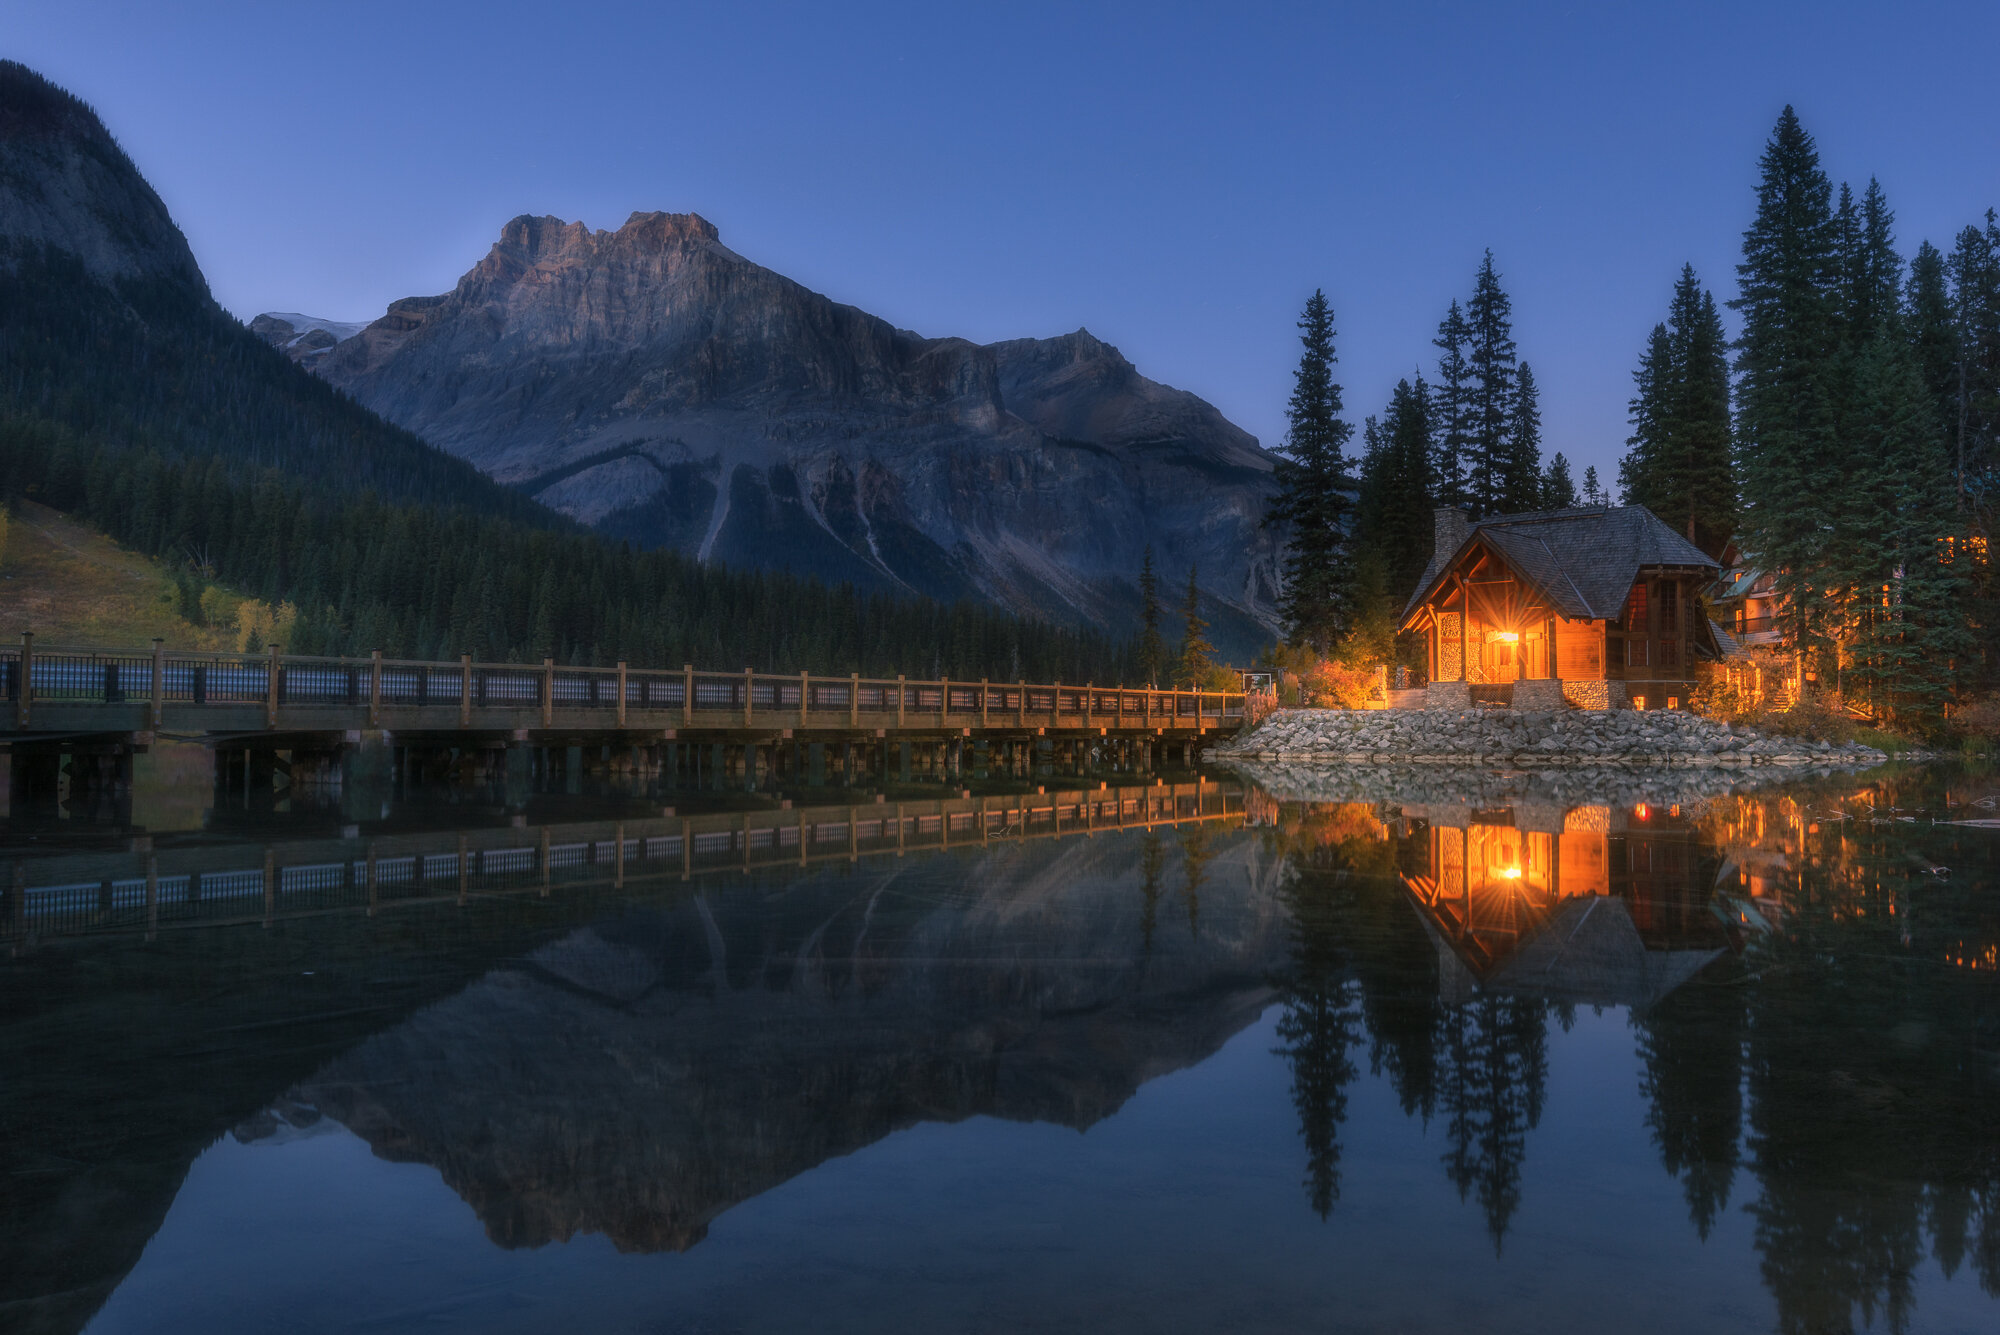 Canadian Rockies Photography: 'Emerald Lake Beauty'